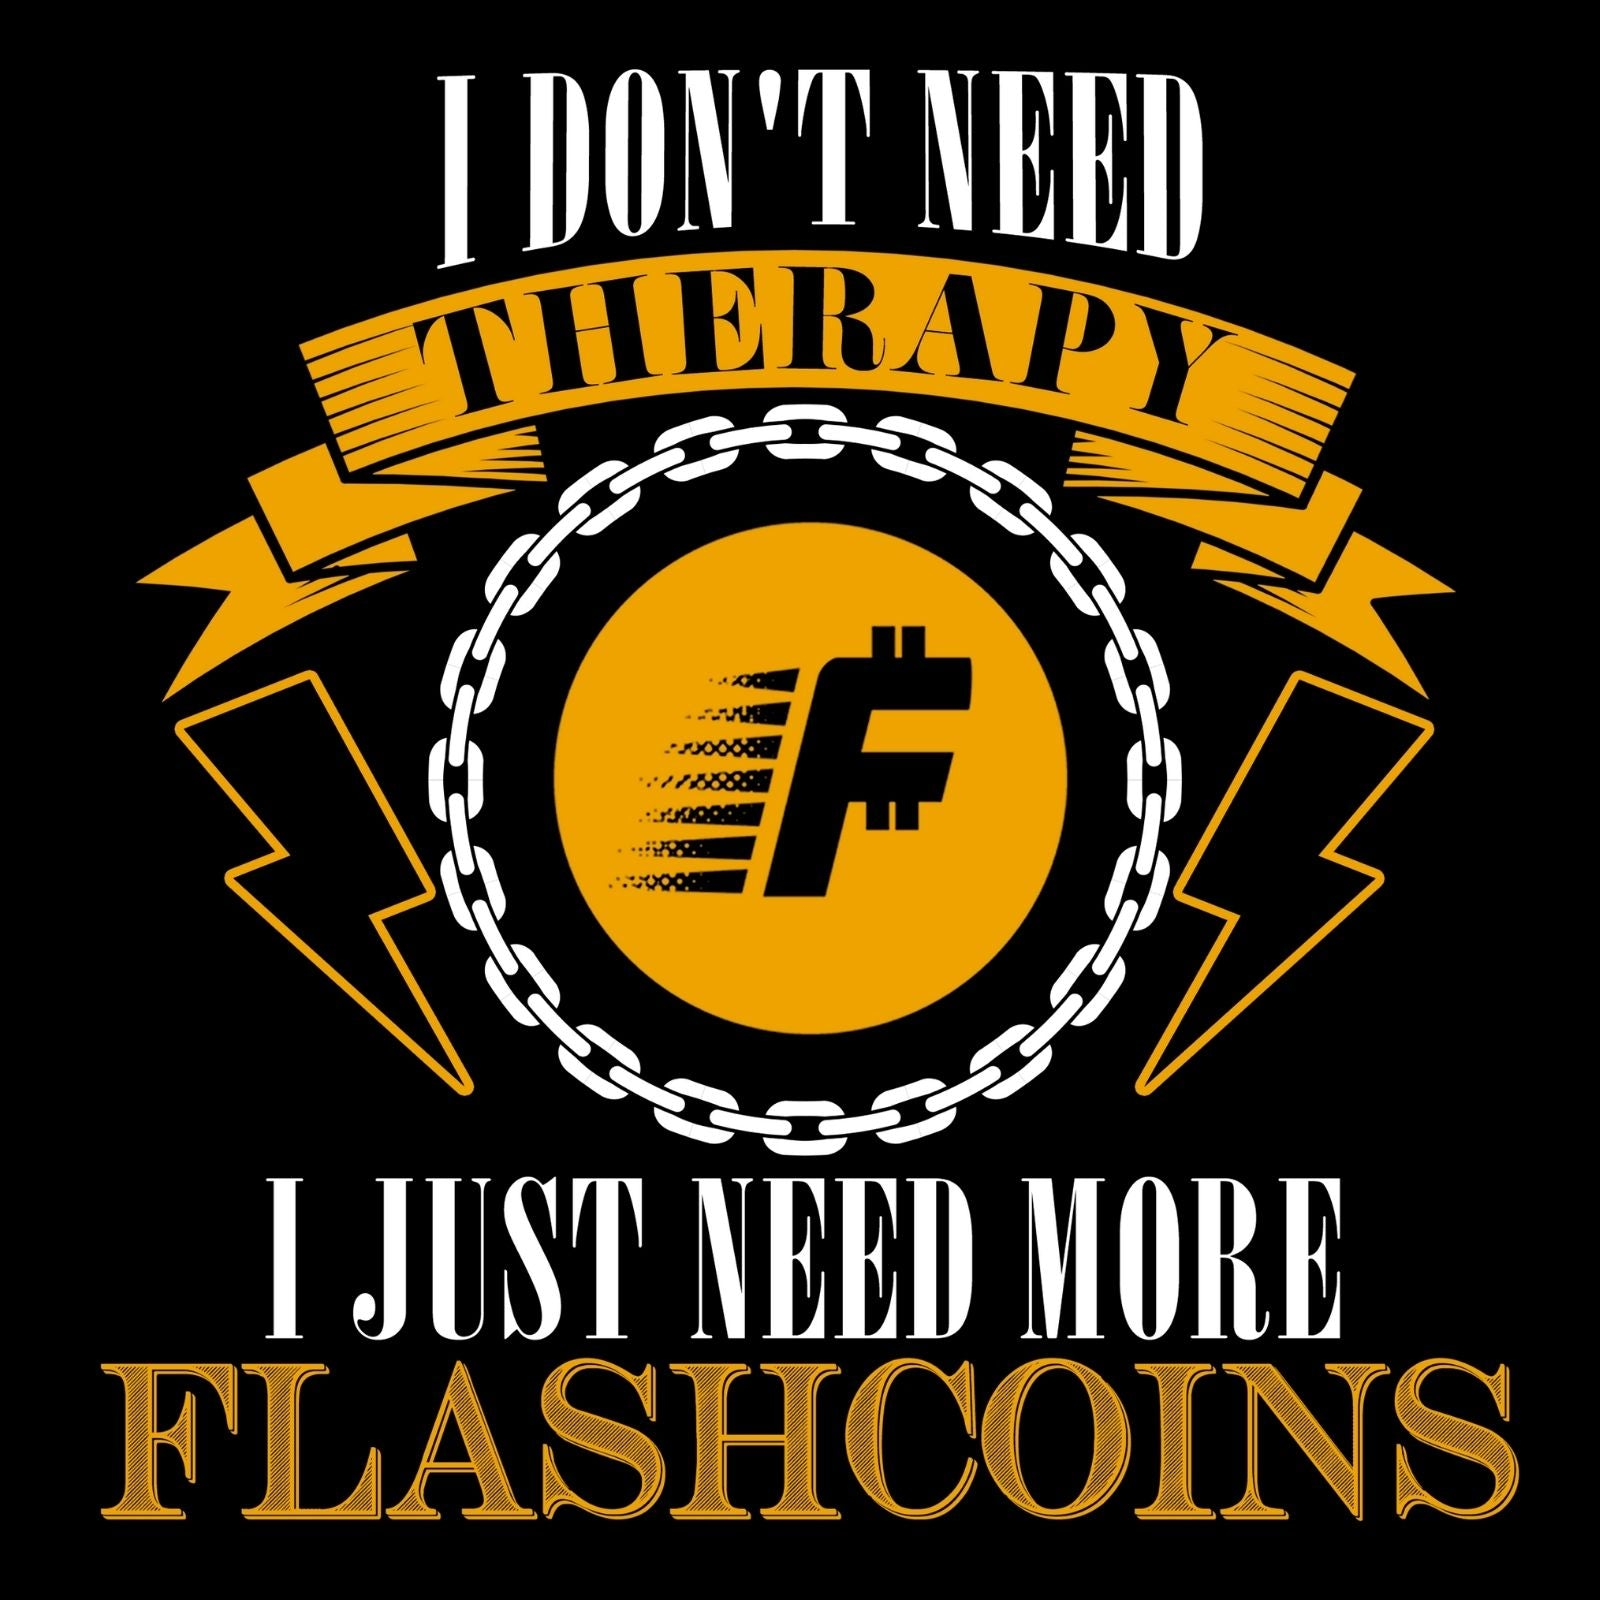 I Don't Need Therapy I Just Need More Flashcoins - Bastard Graphics